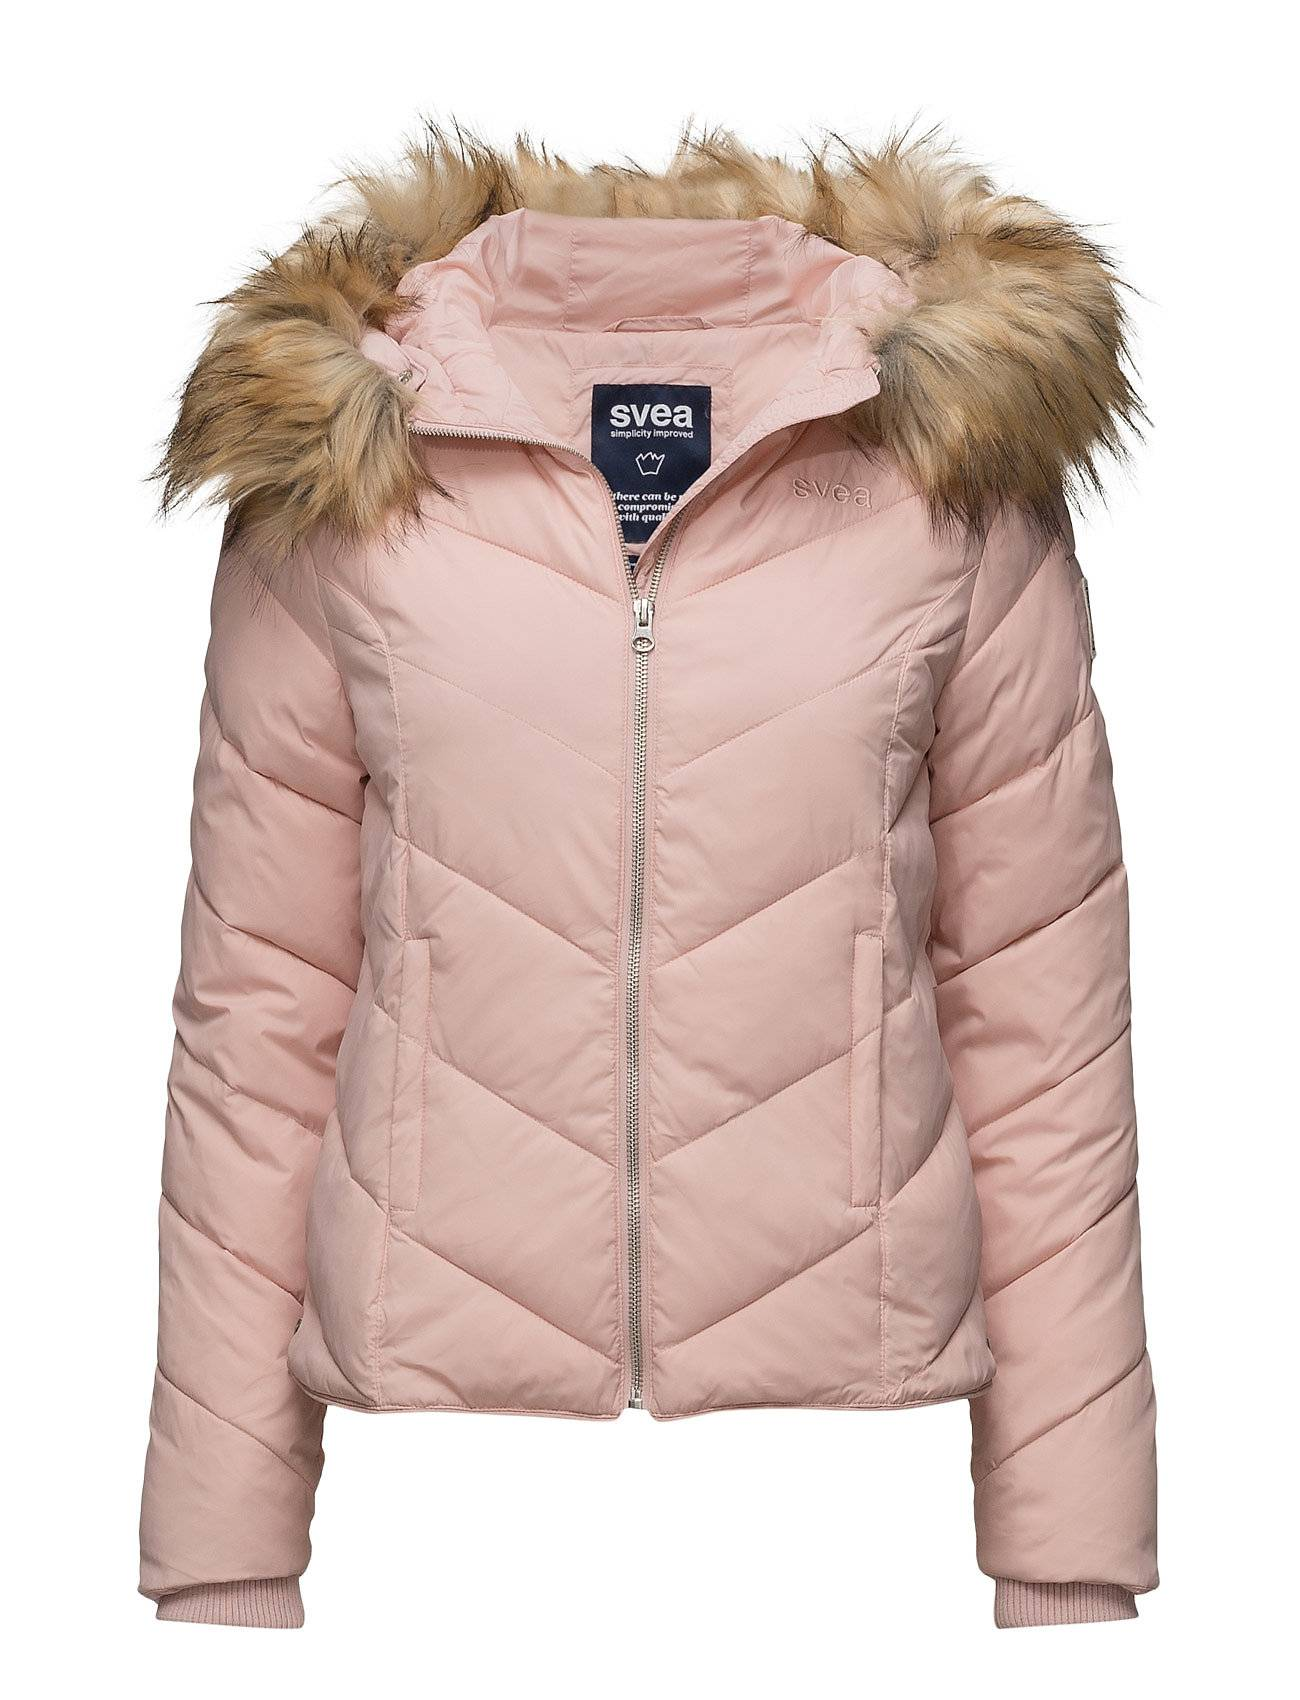 Svea Whitehorse Jacket